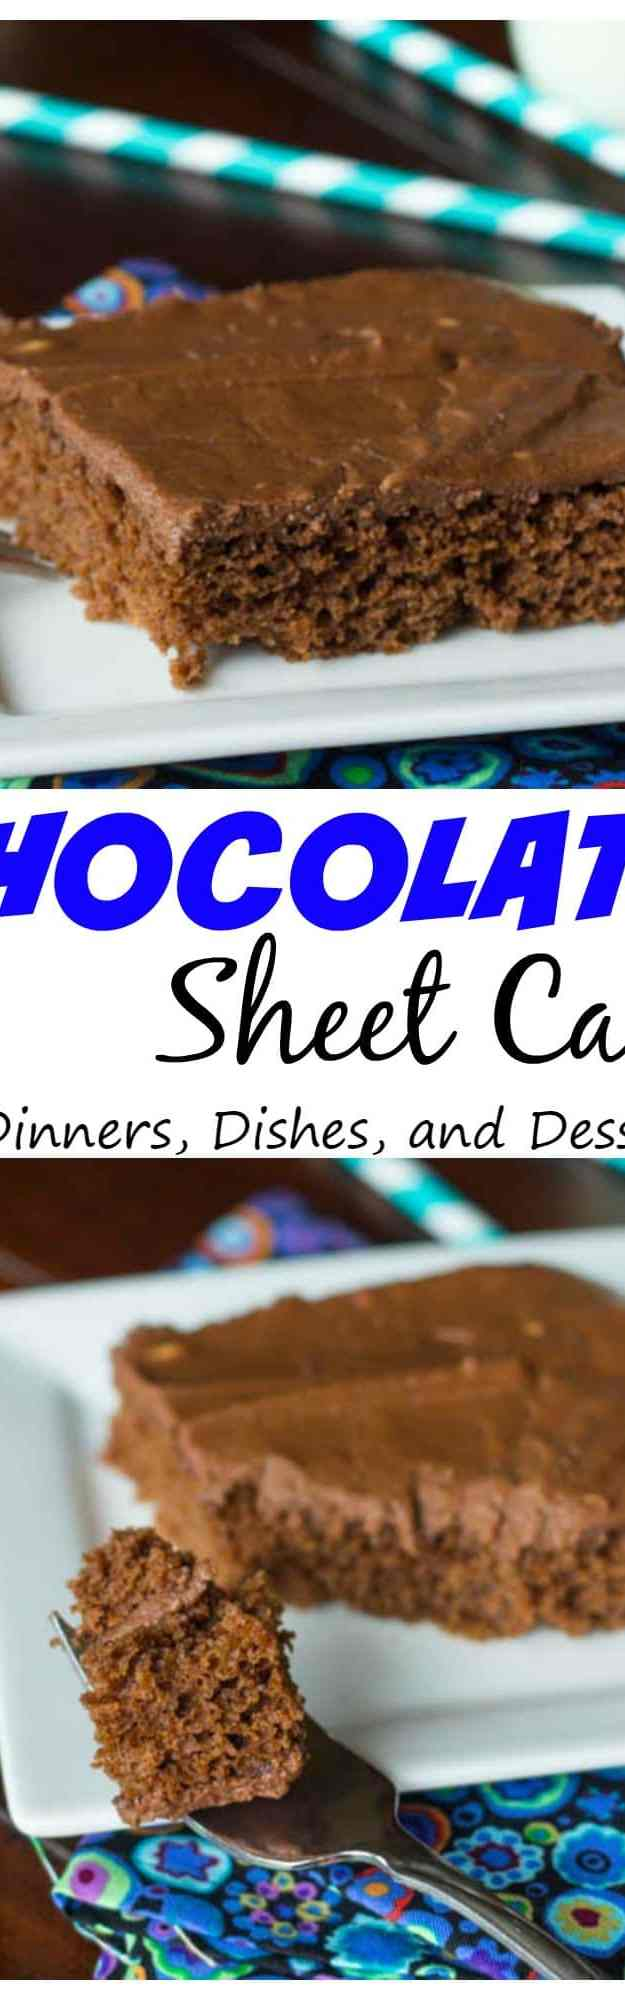 Chocolate Sheet Cake - a traditional rich, chocolate, Texas style sheet cake.